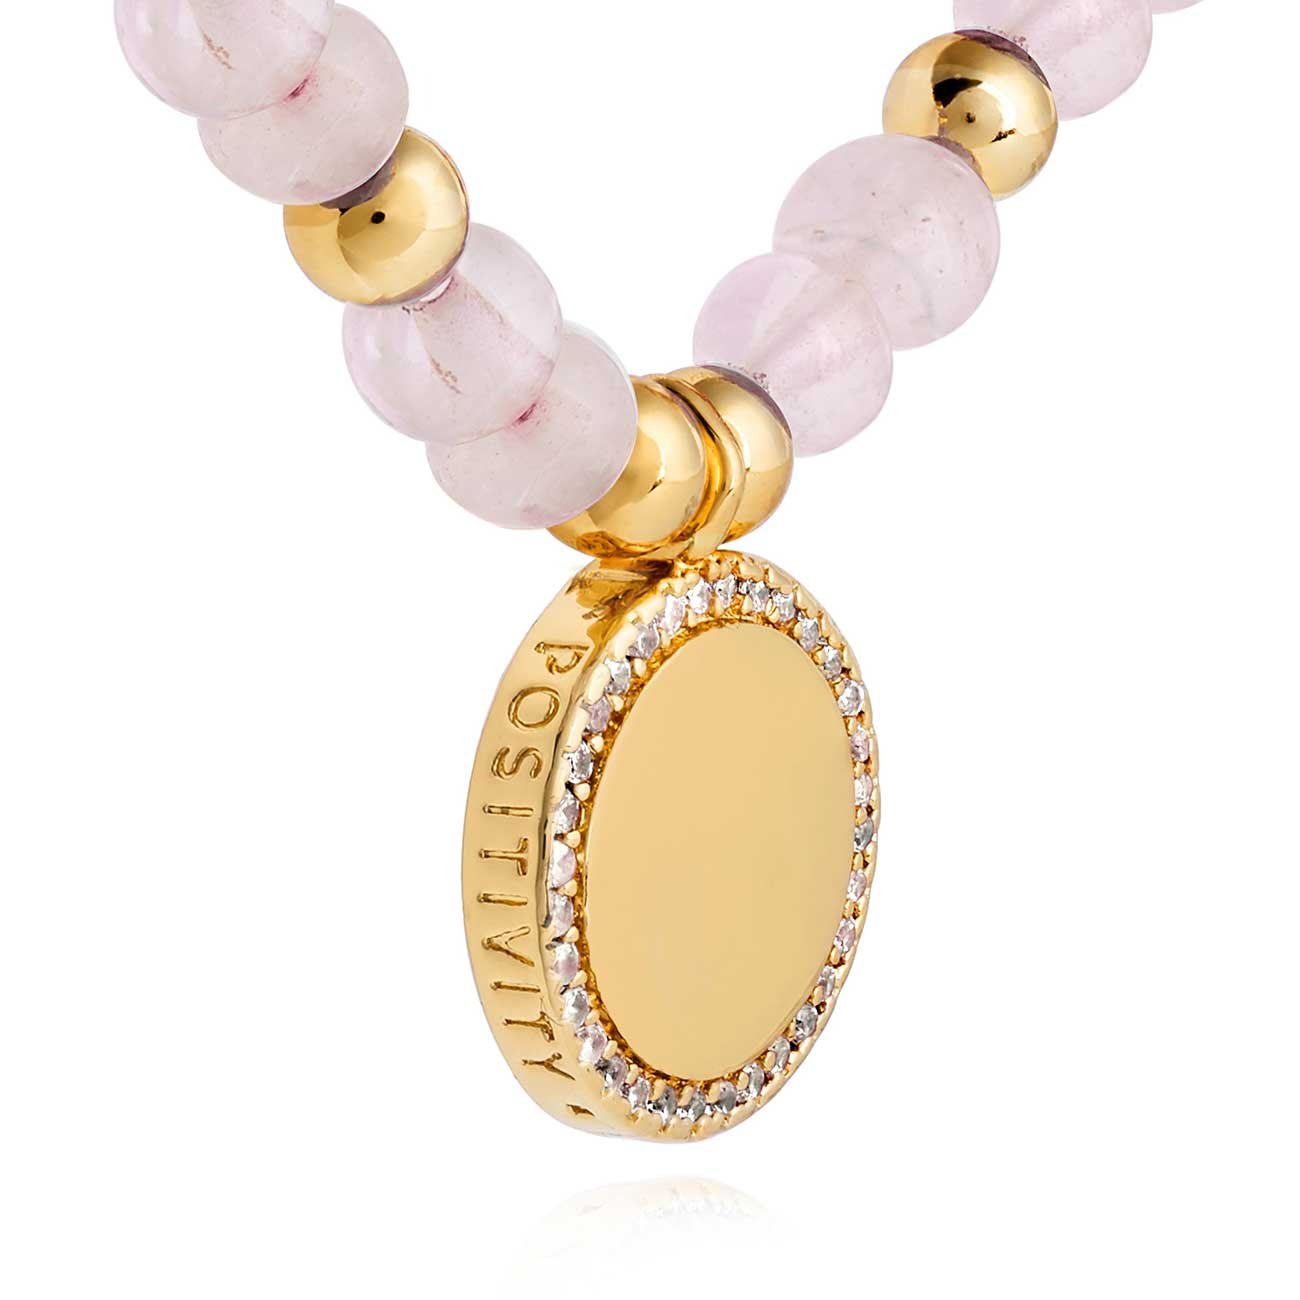 Joma Jewellery Wellness Gems Rose Quartz Bracelet - Positivity Love Compassion